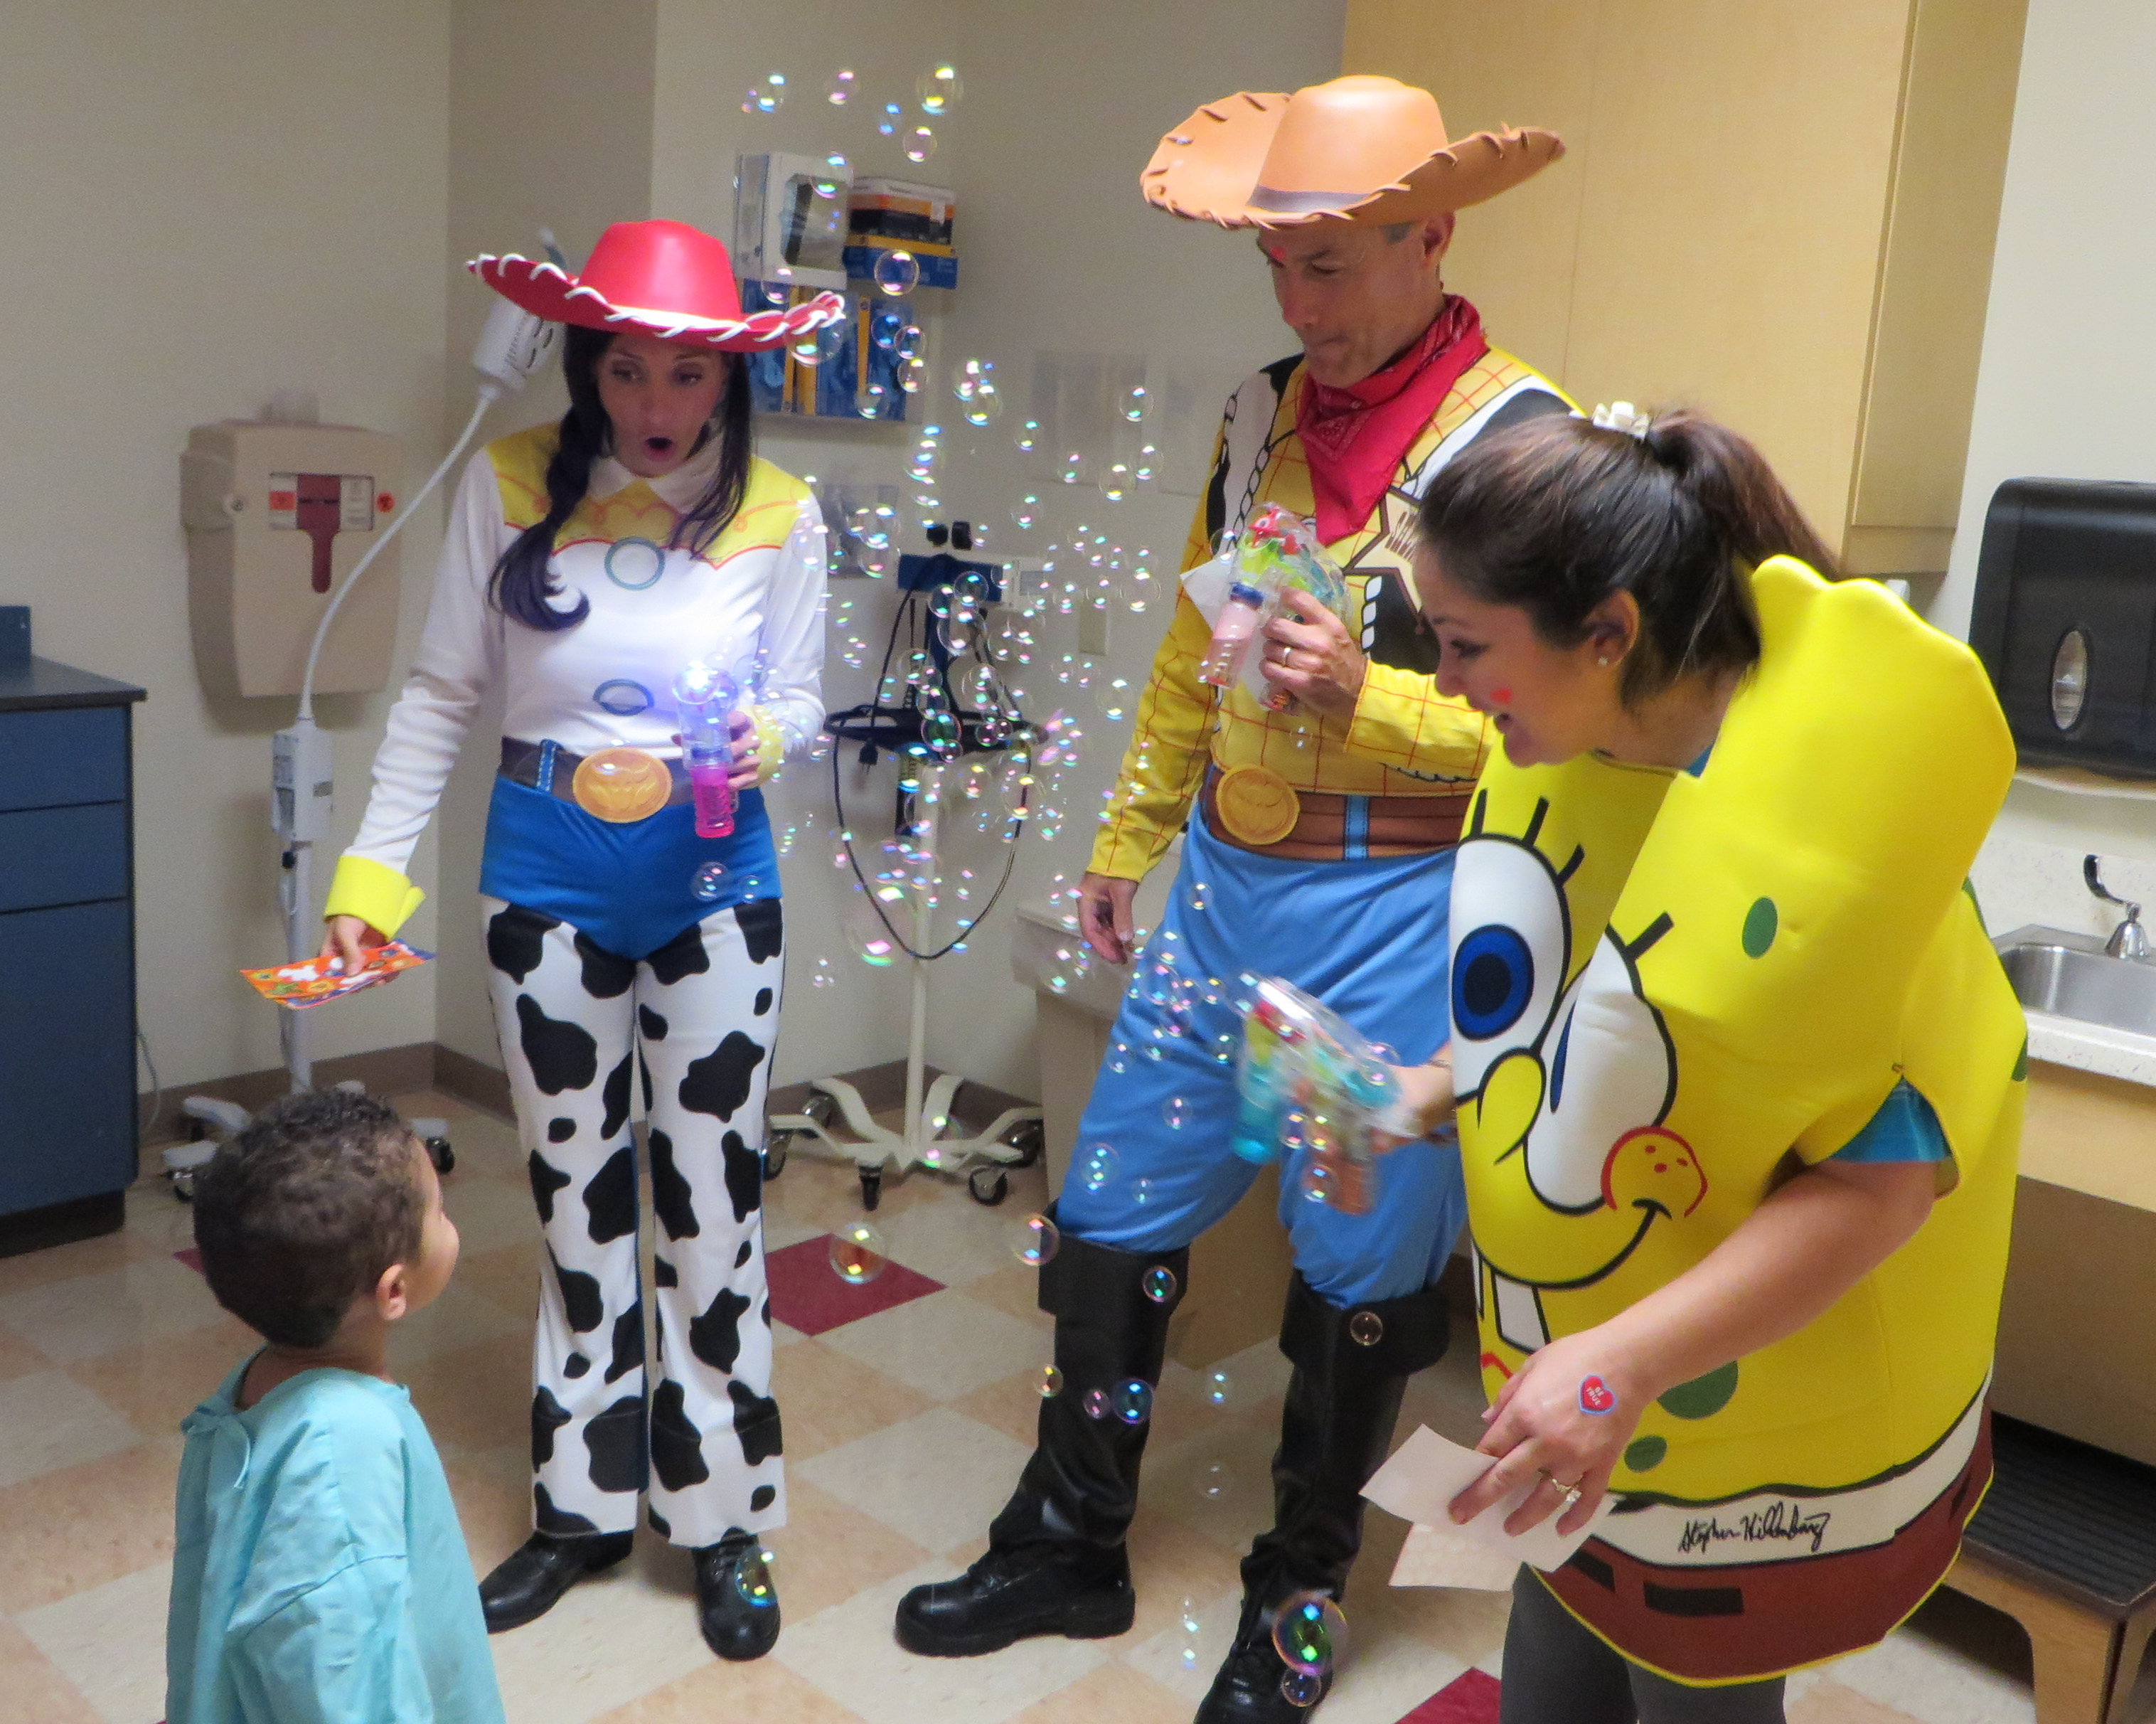 Woody Jessie And Special Guest Spongebob Bring Smiles To